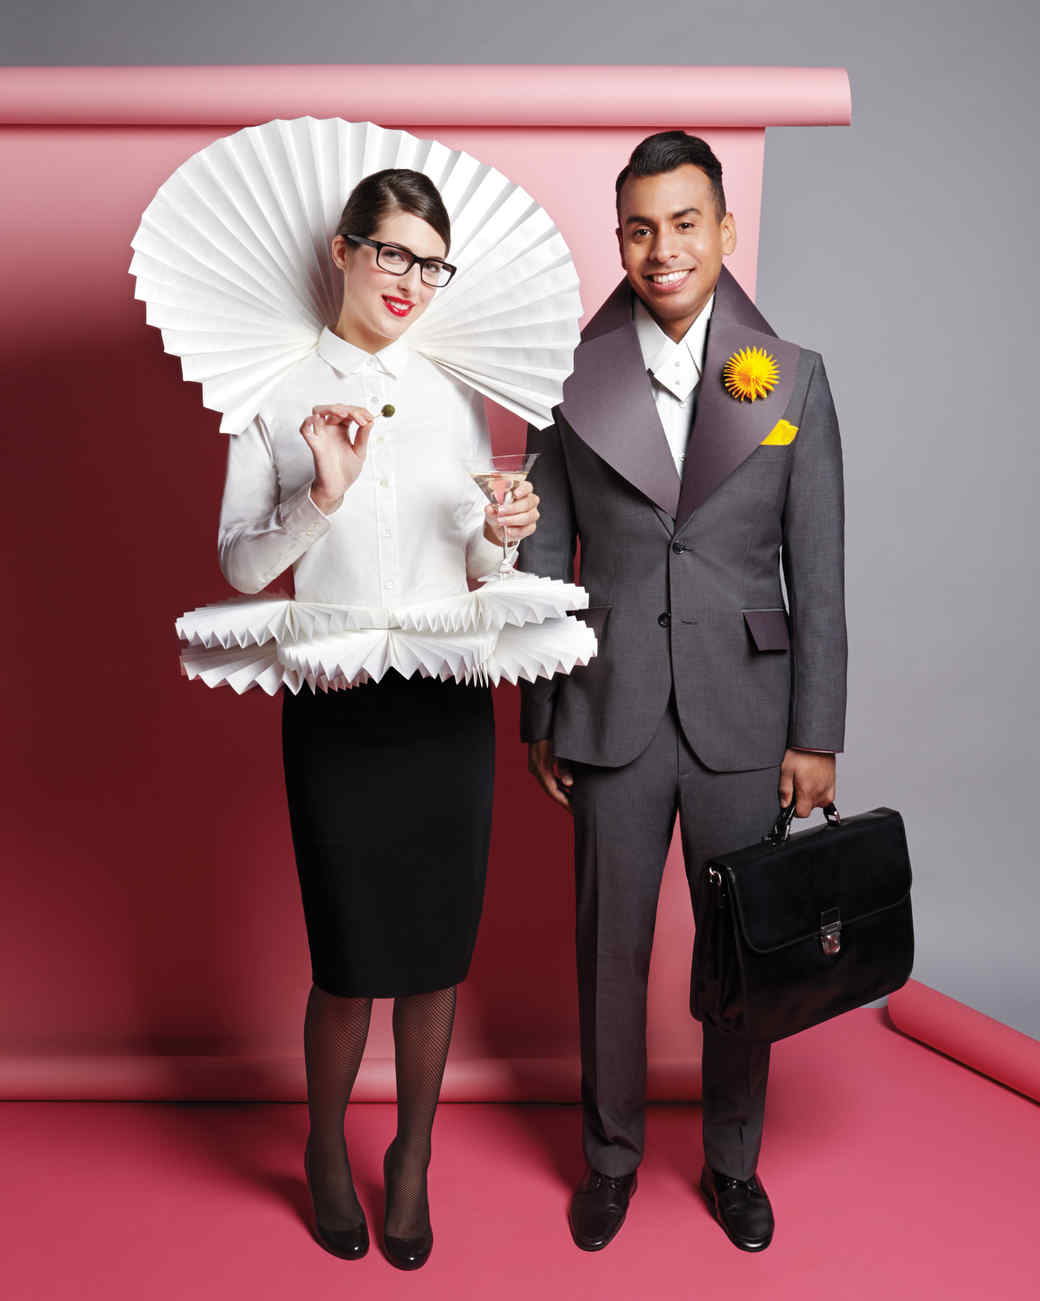 business attire with paper embellishments costumes